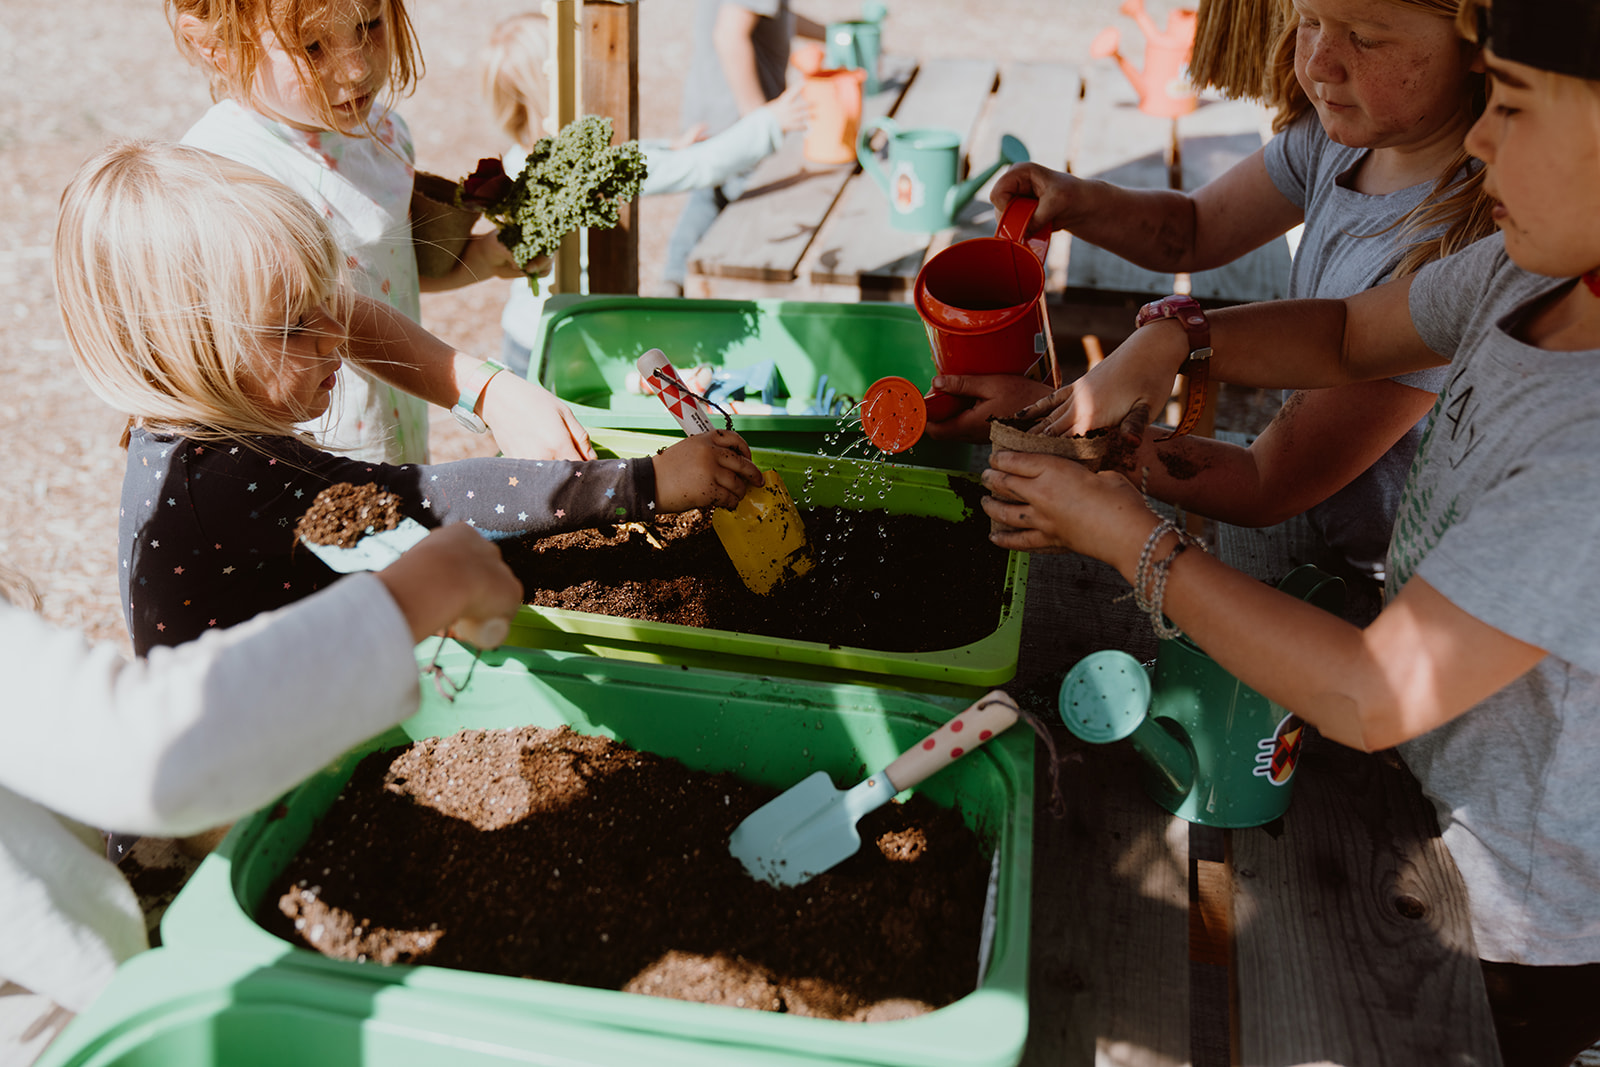 Children playing with garden tools and dirt.